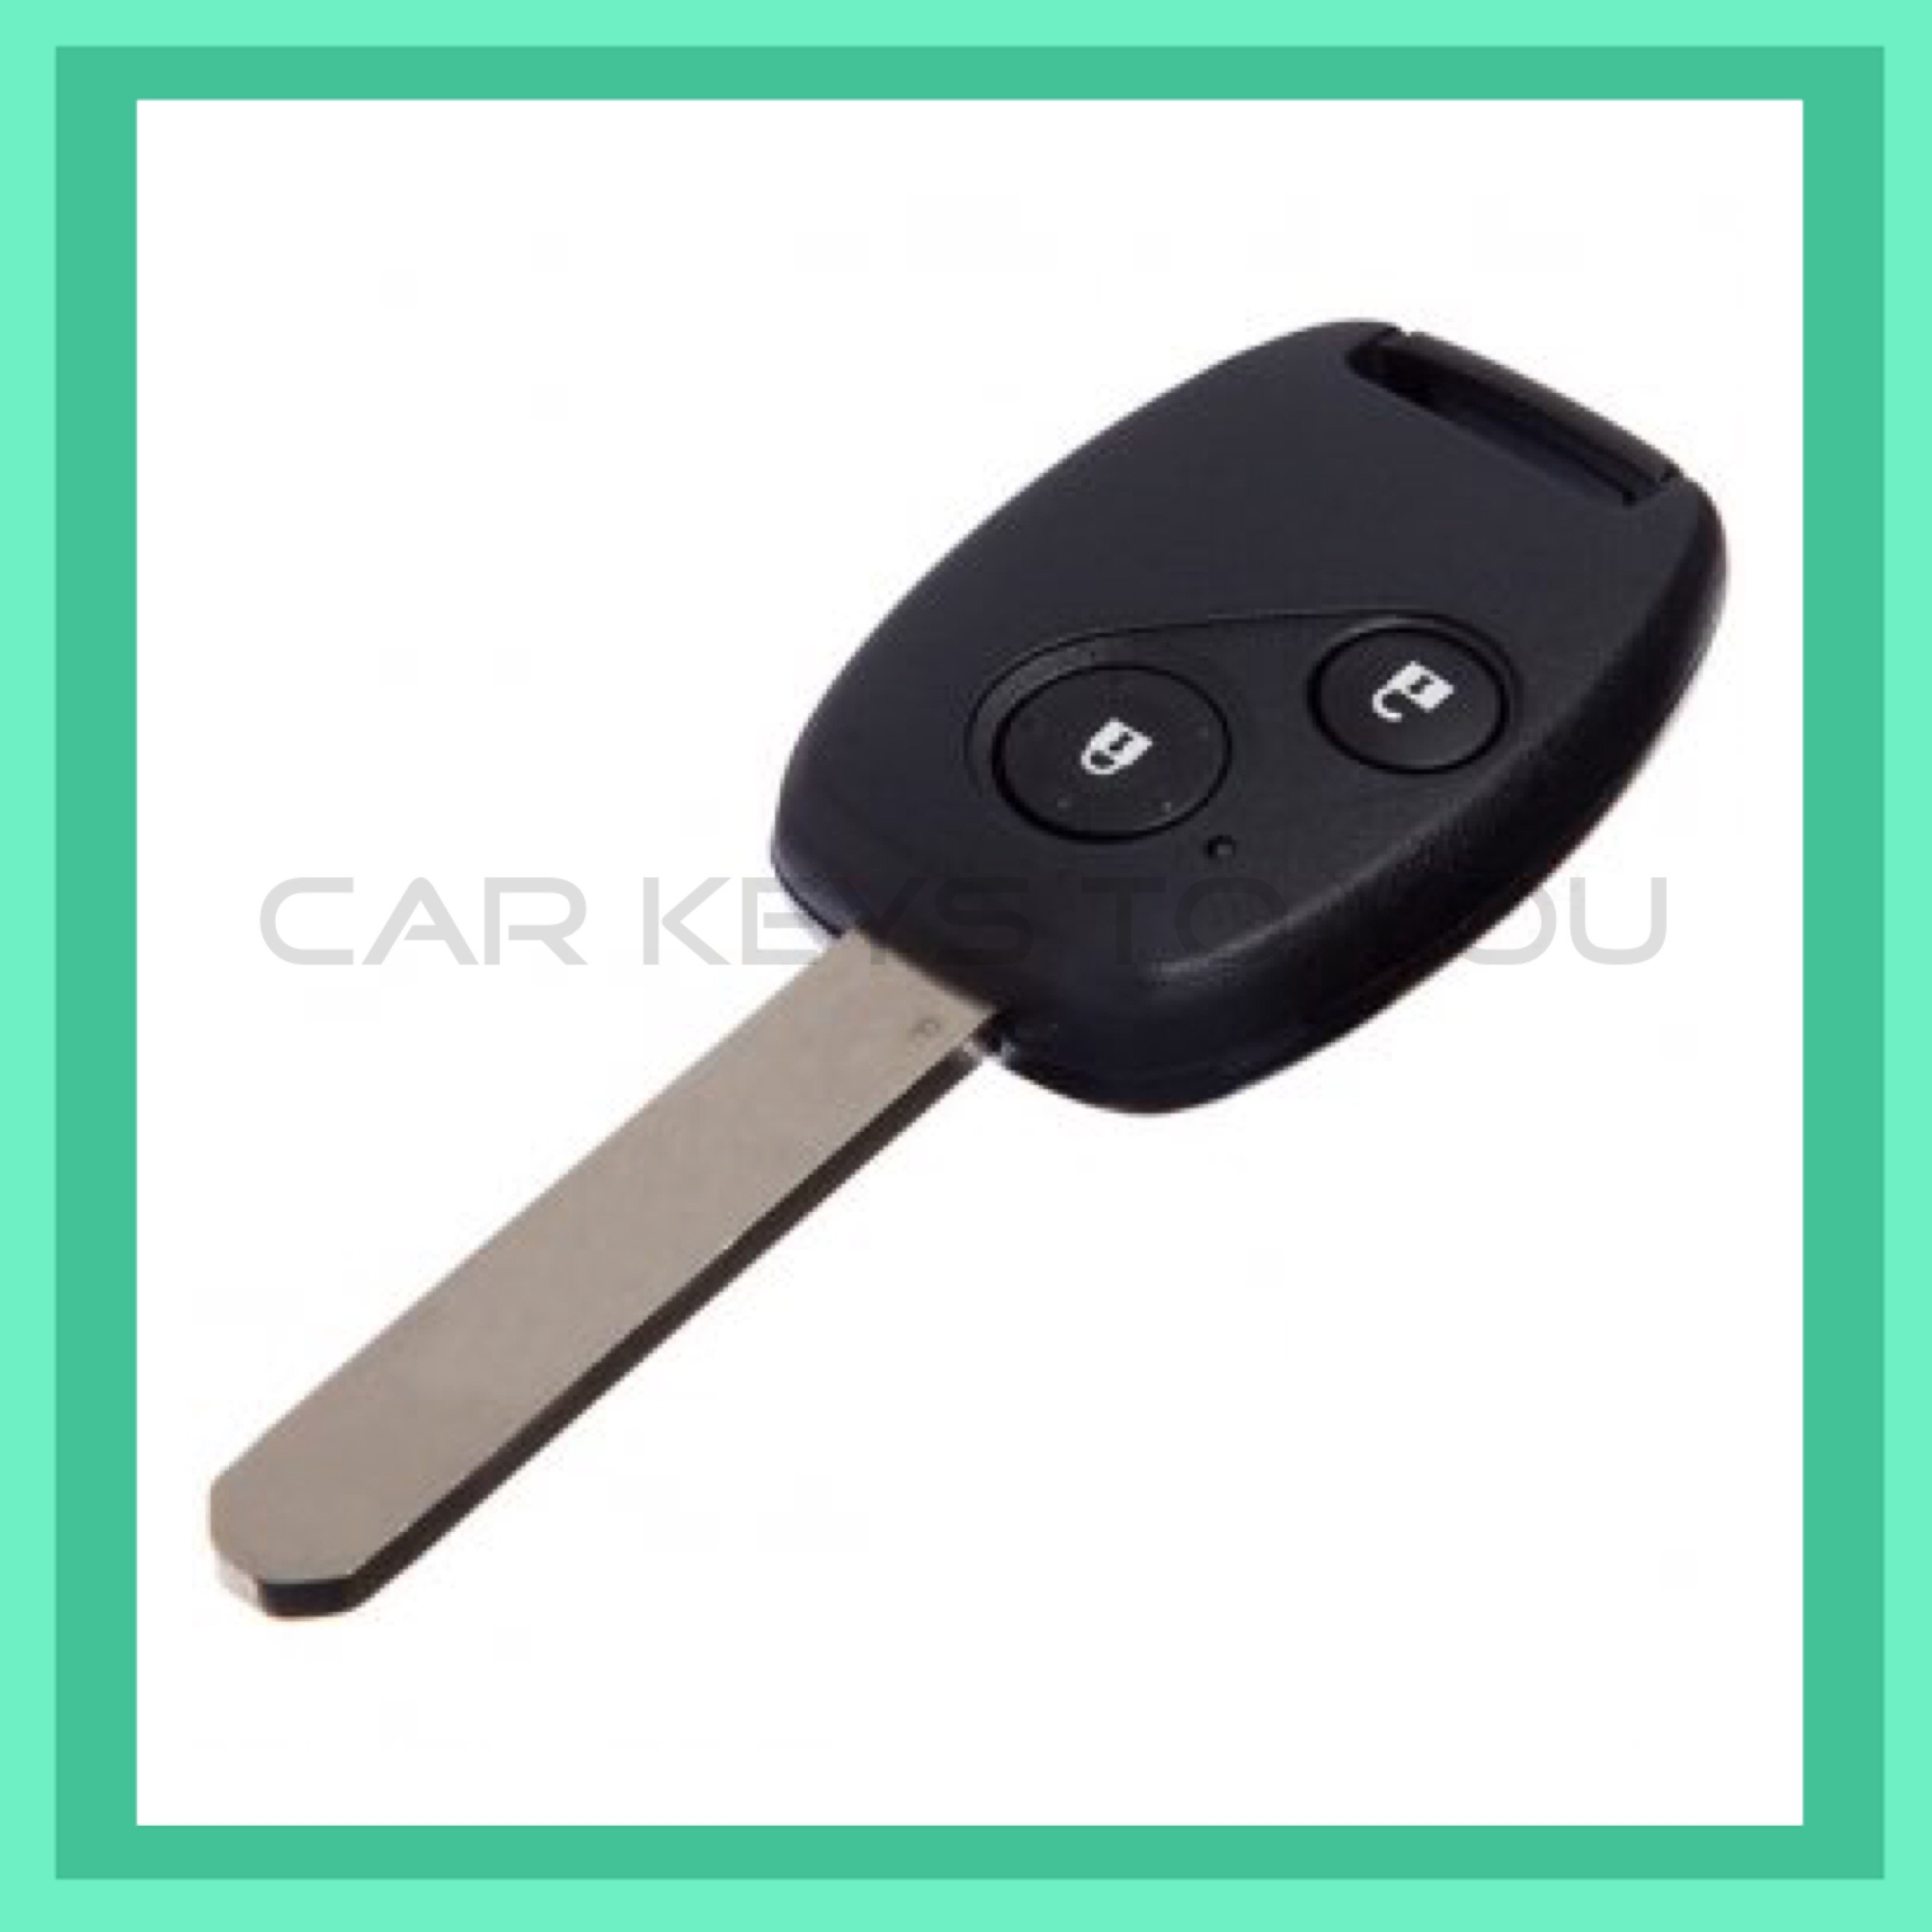 Honda CR-V Car Key and Remote RD Series 2, 2004-2007